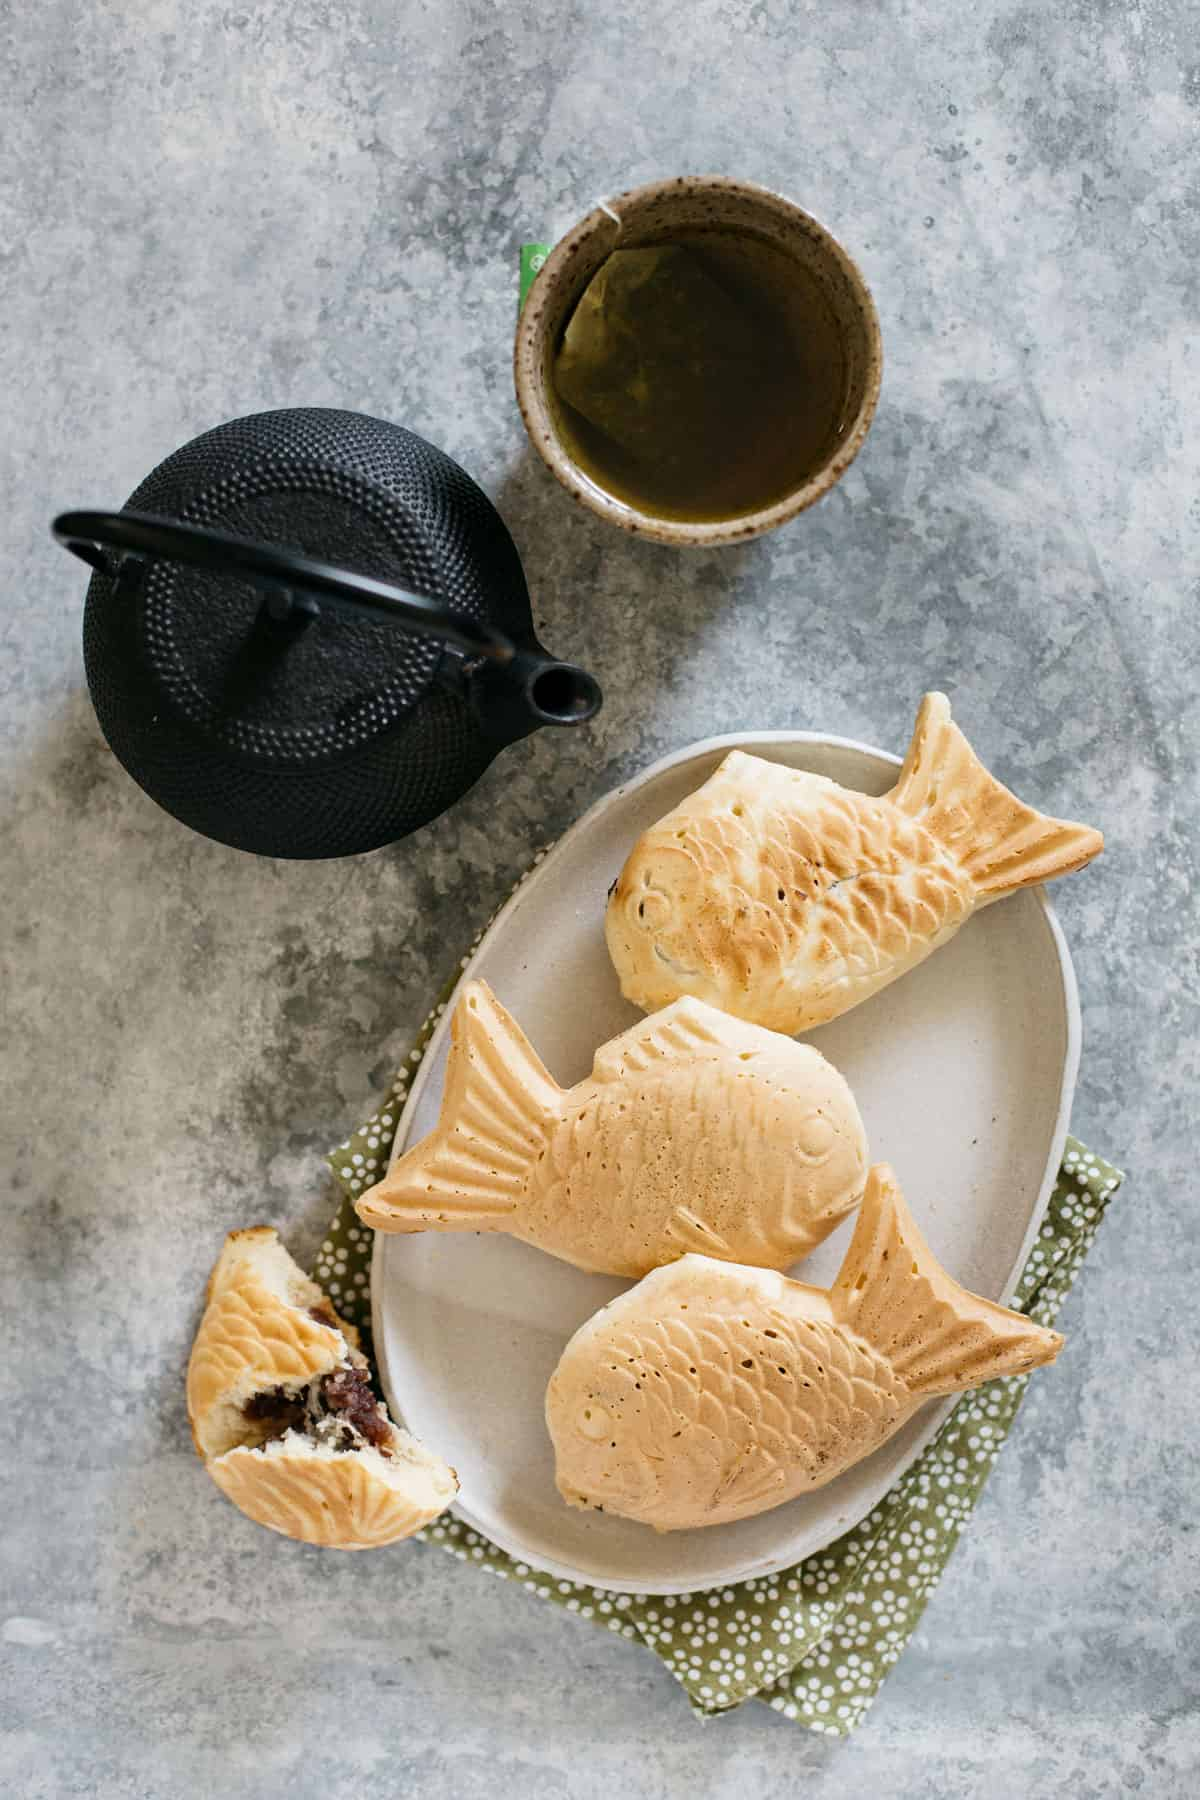 Three taiyaki fish waffle served on an oval plate with a Japanese steel kettle and a cup of green tea